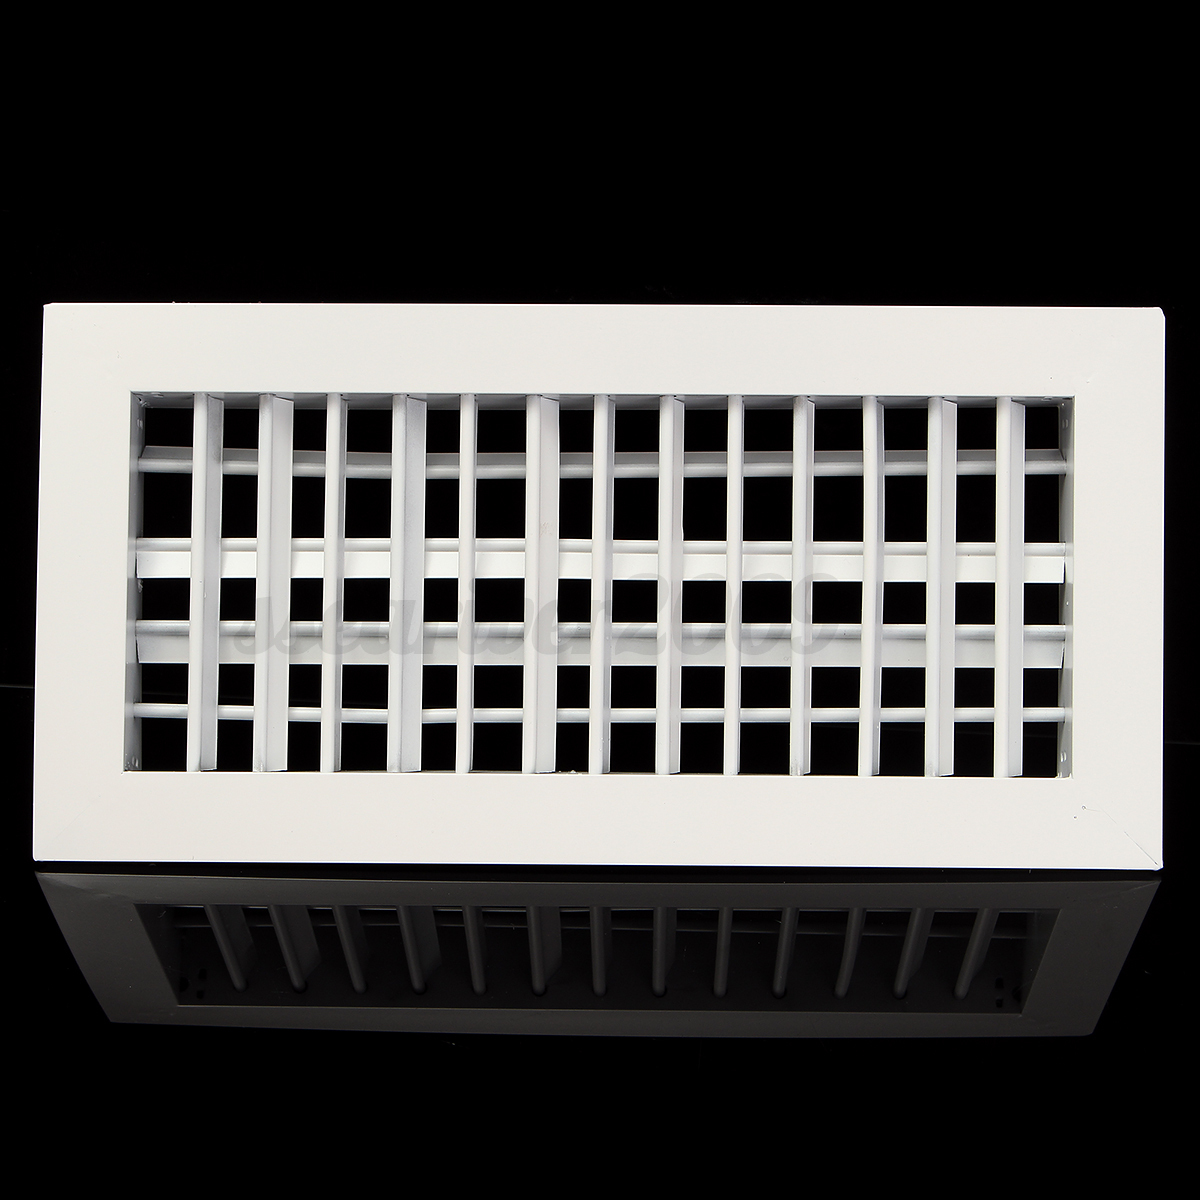 grille cover wall ventilation grille air vent grille white wall ducting ventilation cover grid 4. Black Bedroom Furniture Sets. Home Design Ideas